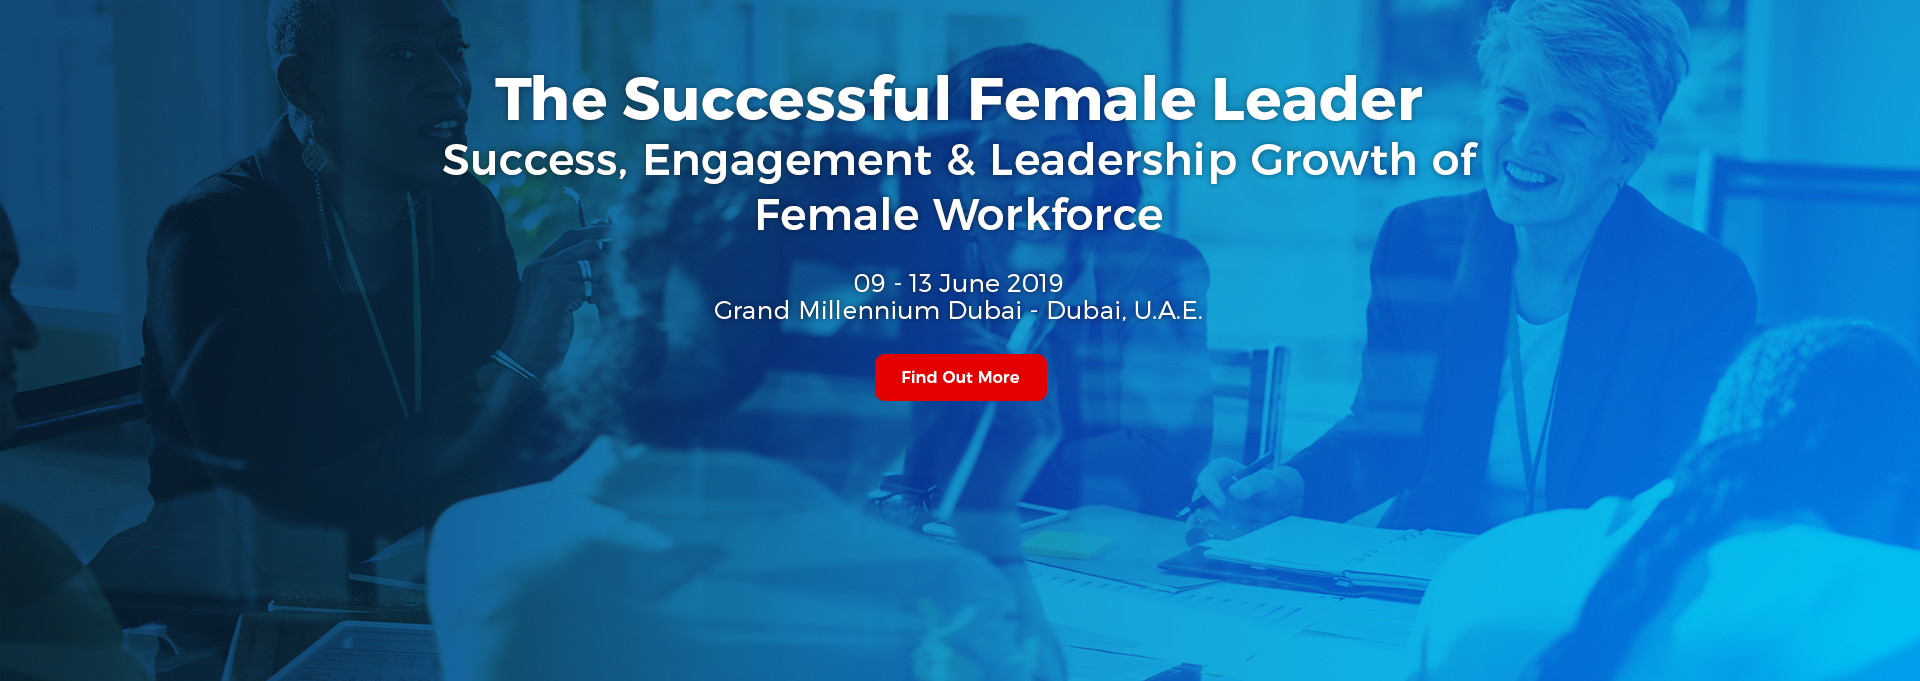 EuroMaTech The Successful Female Leader